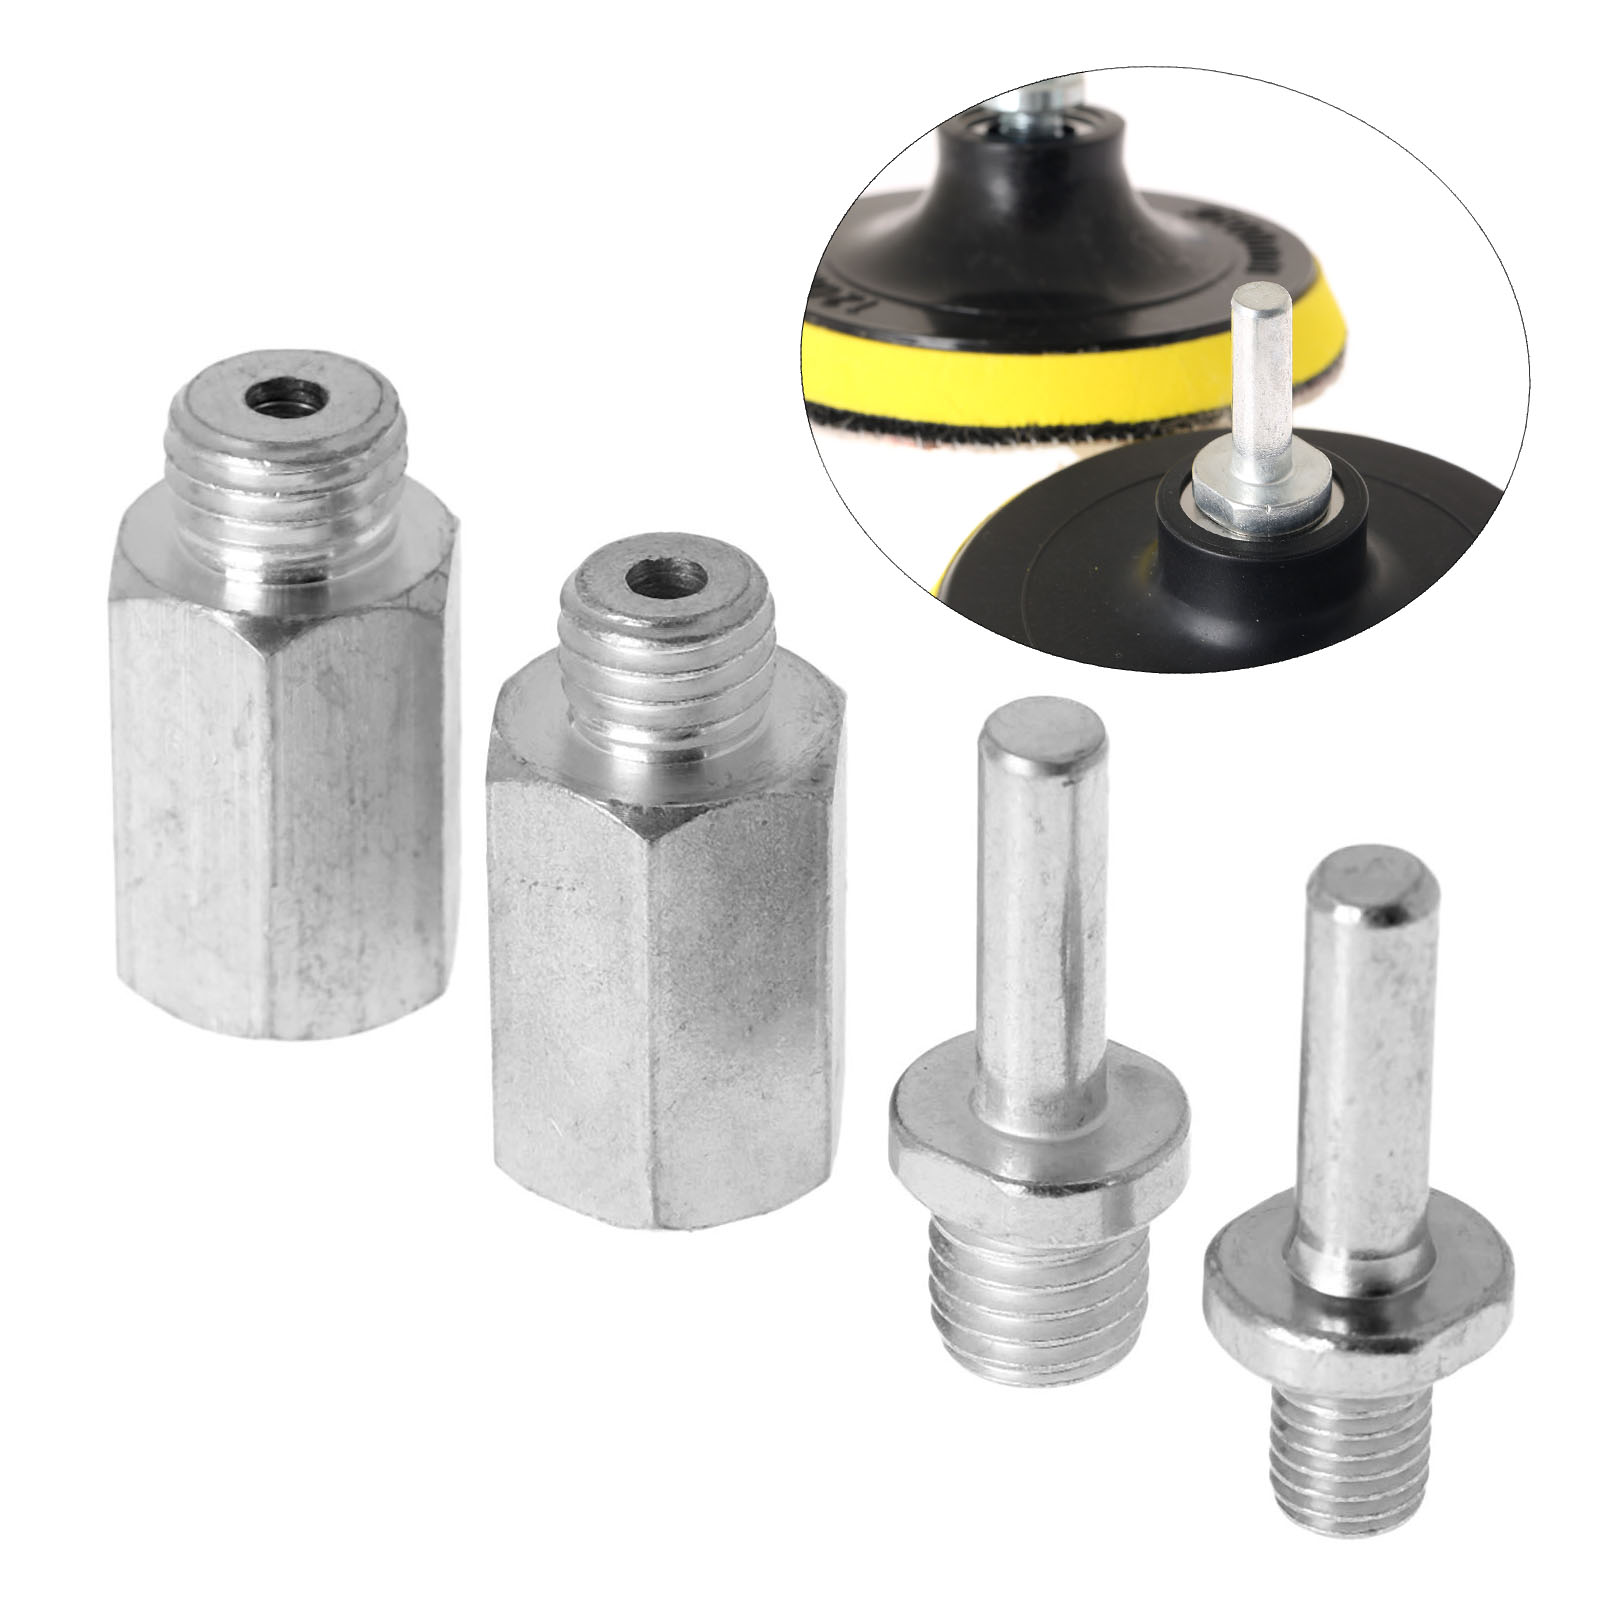 DRELD 1Pc Drill Aapter Thread For Polishing Pad & Hook Loop Backer Plate Backing Pad & Polisher M10/M14/M16 5/8